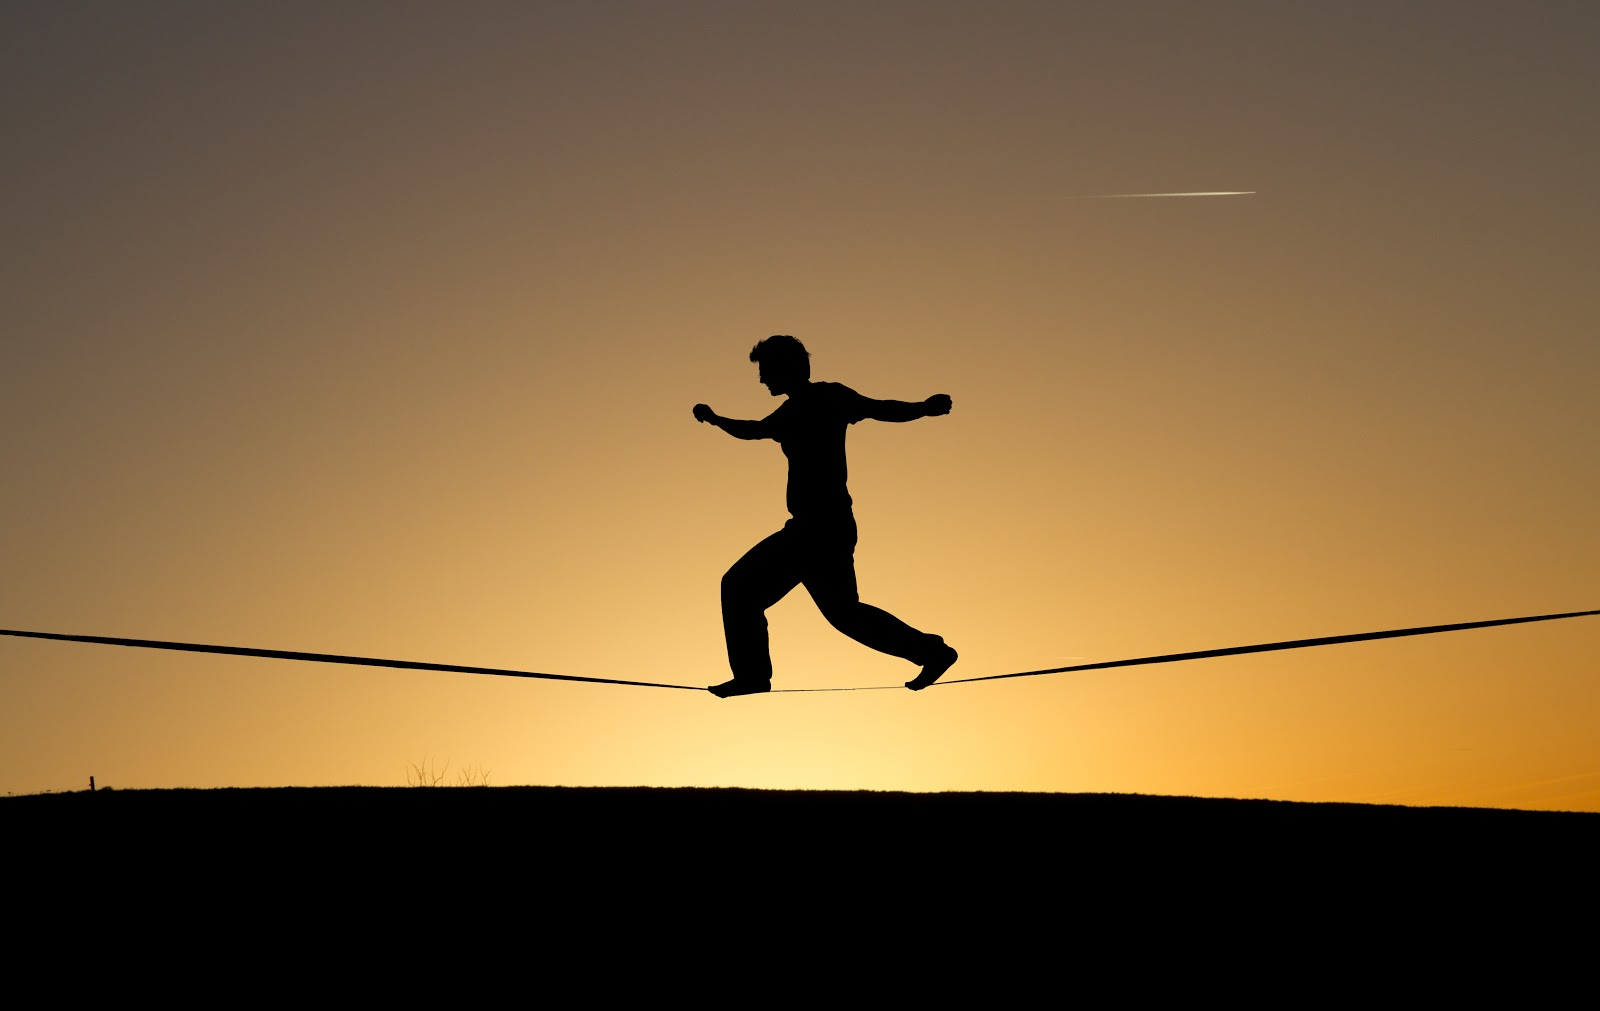 Your credit limit is a balancing act